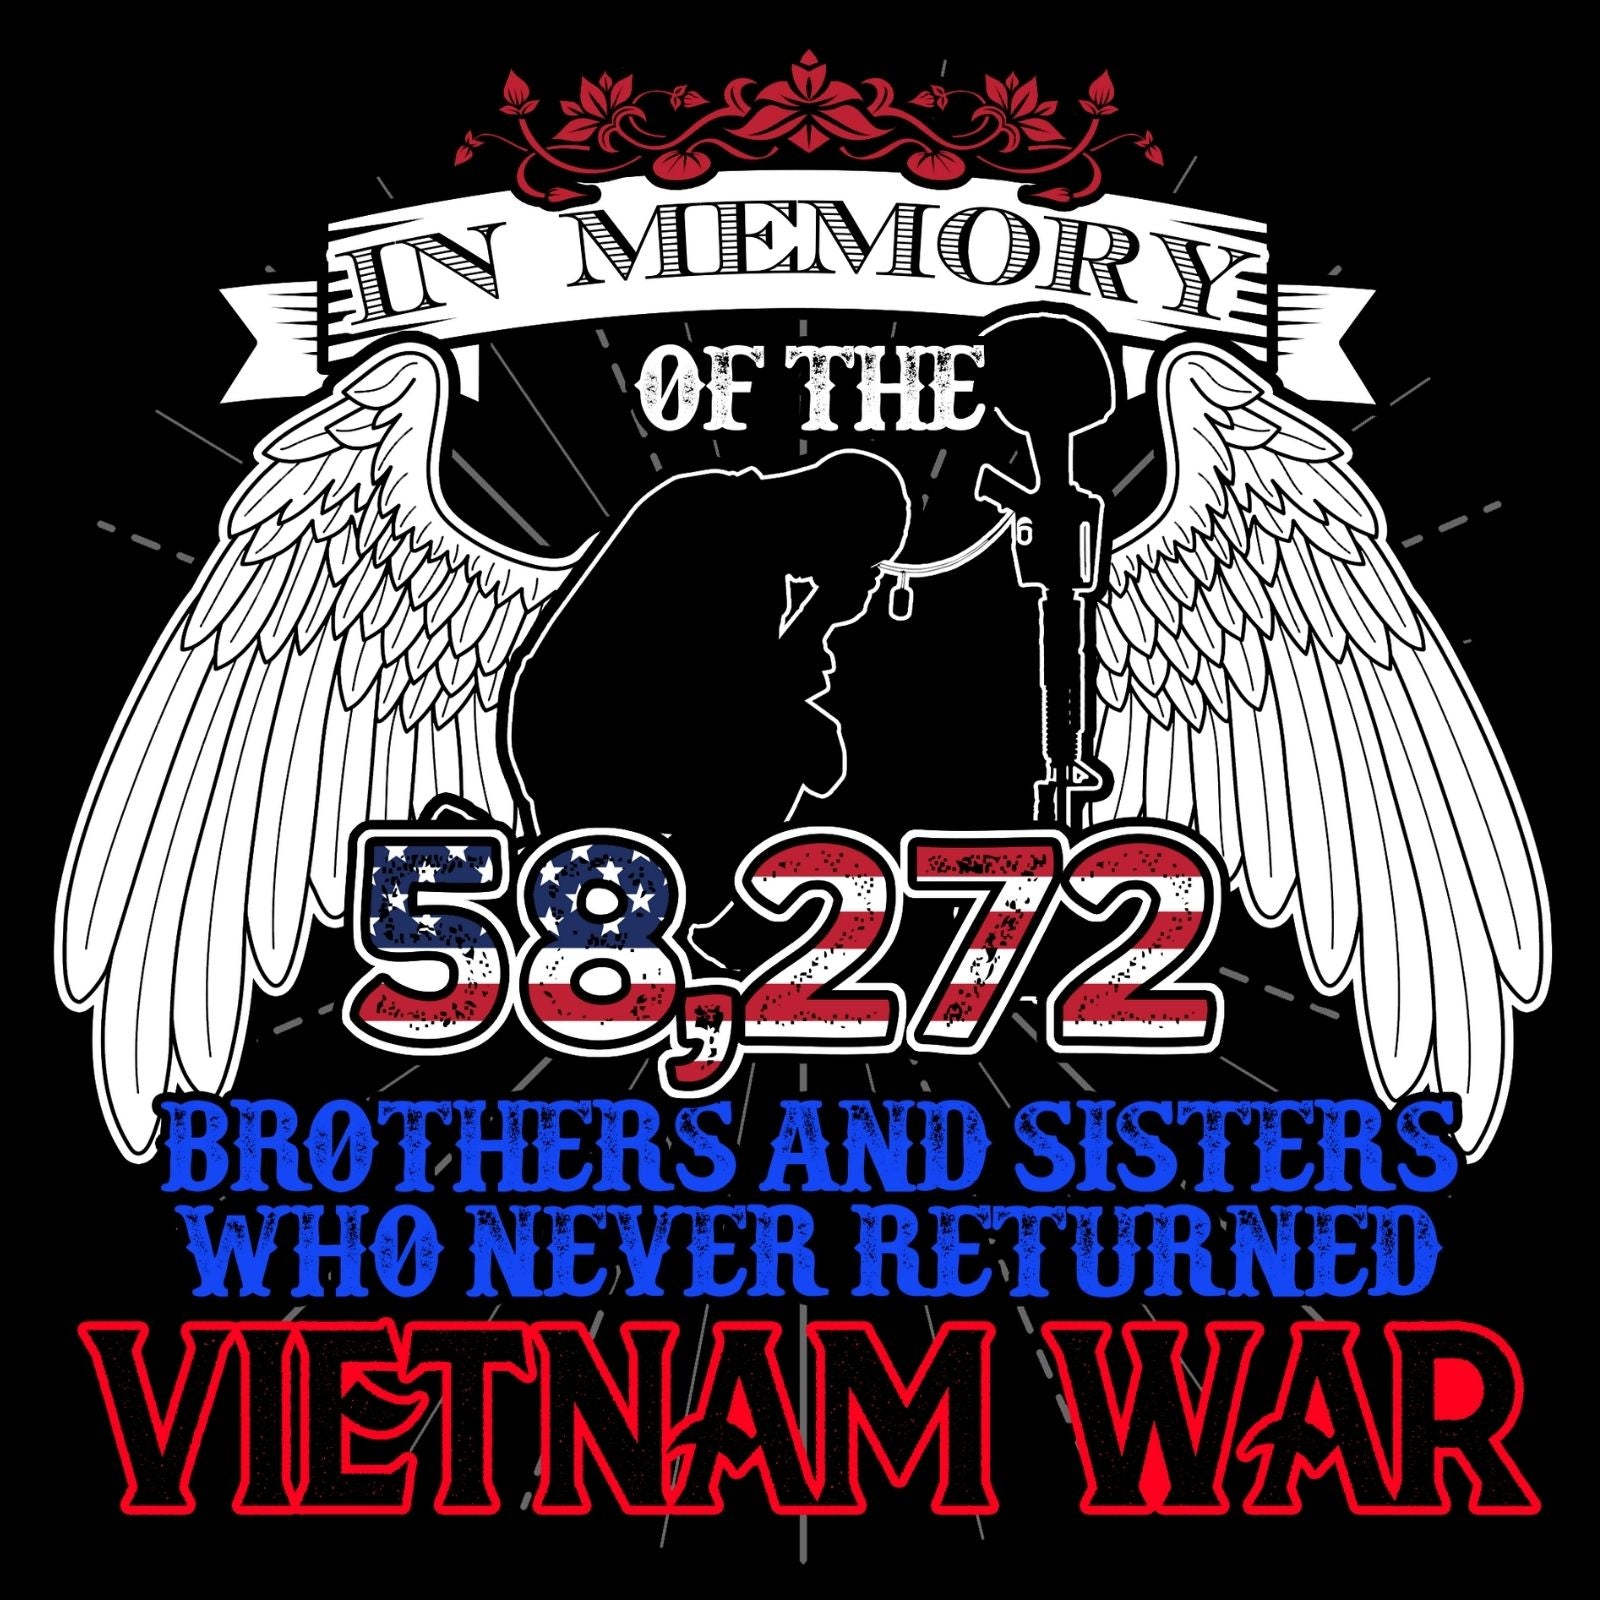 In Memory Of The 58,272 Brothers & Sisters Who Never Returned Vietnam War - Bastard Graphics